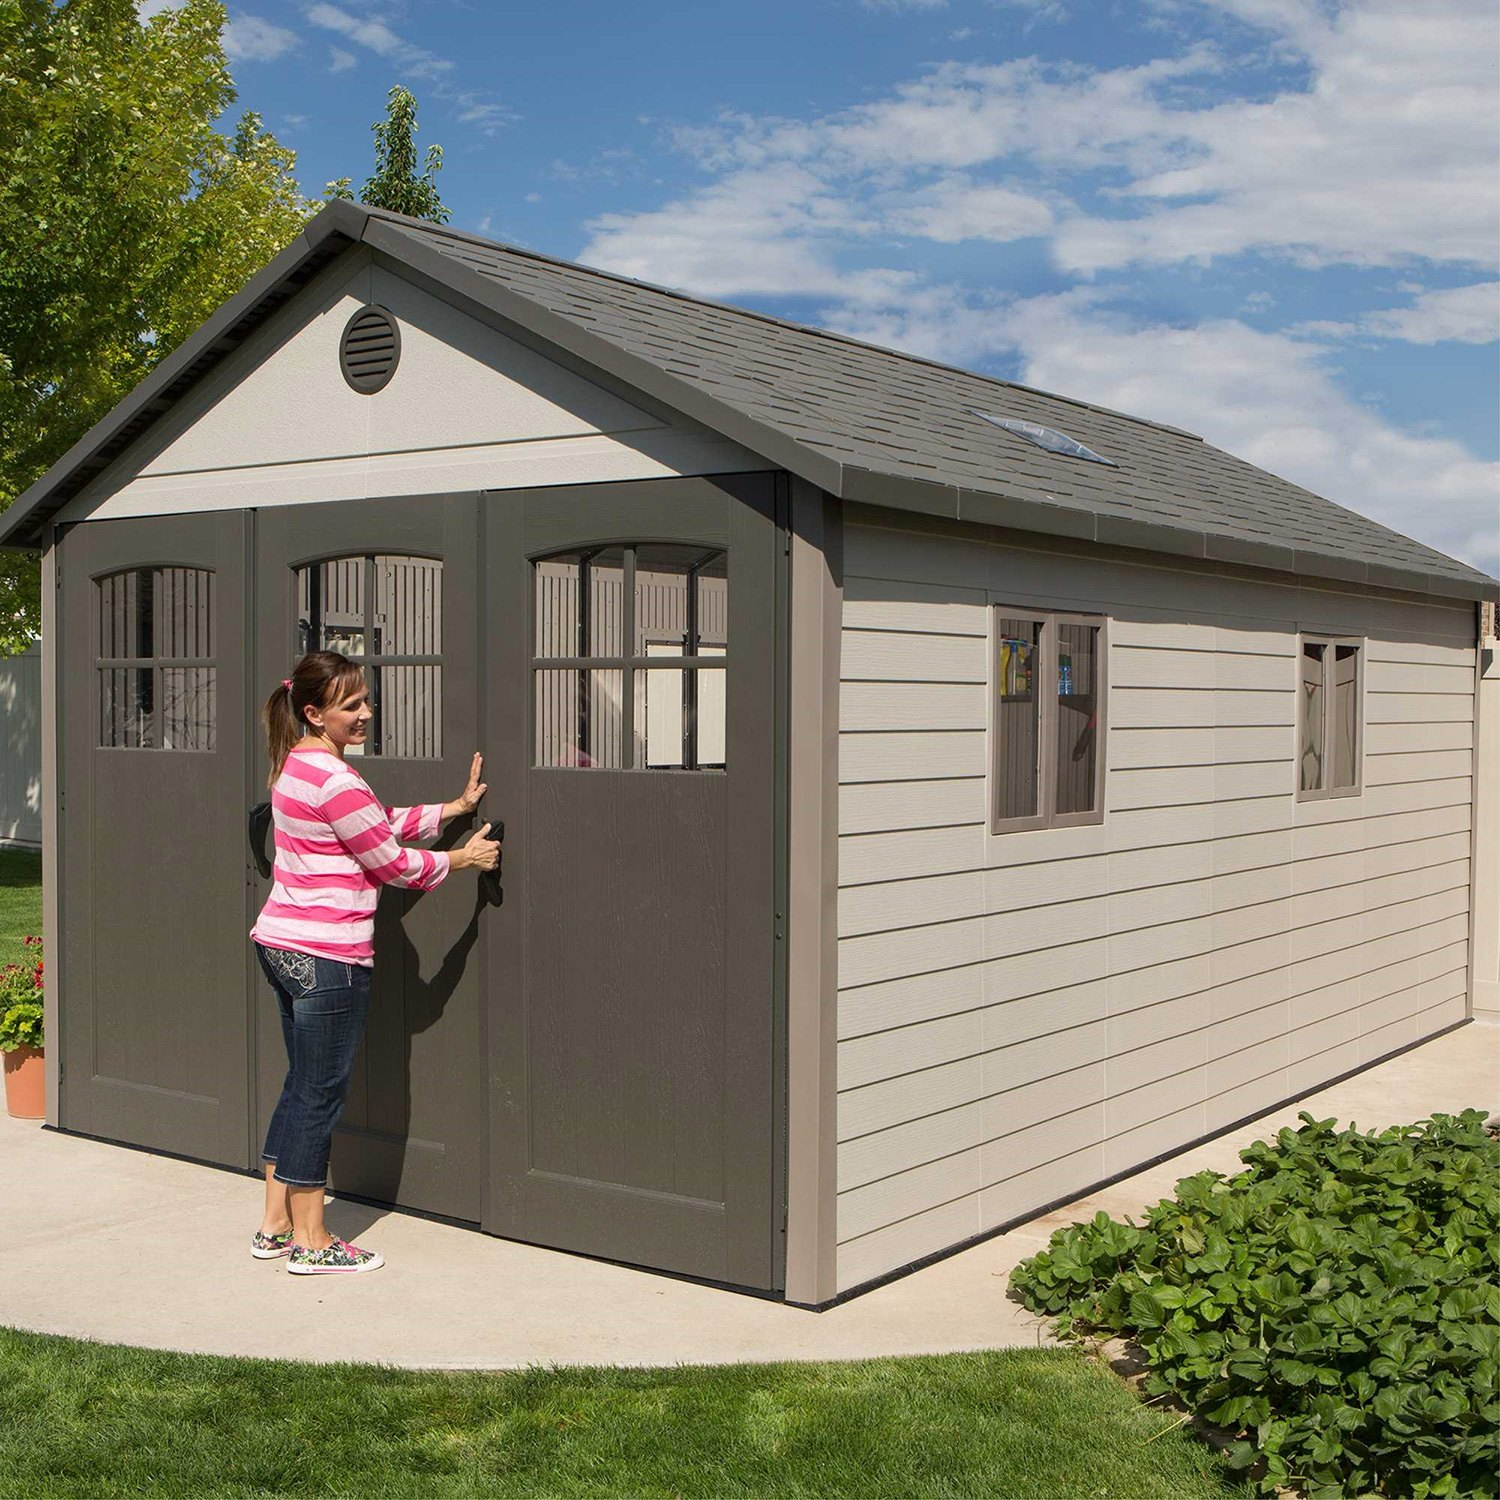 garden cubic amazon small roughneck dp shed outdoor plastic com storage sheds rubbermaid feet backyard